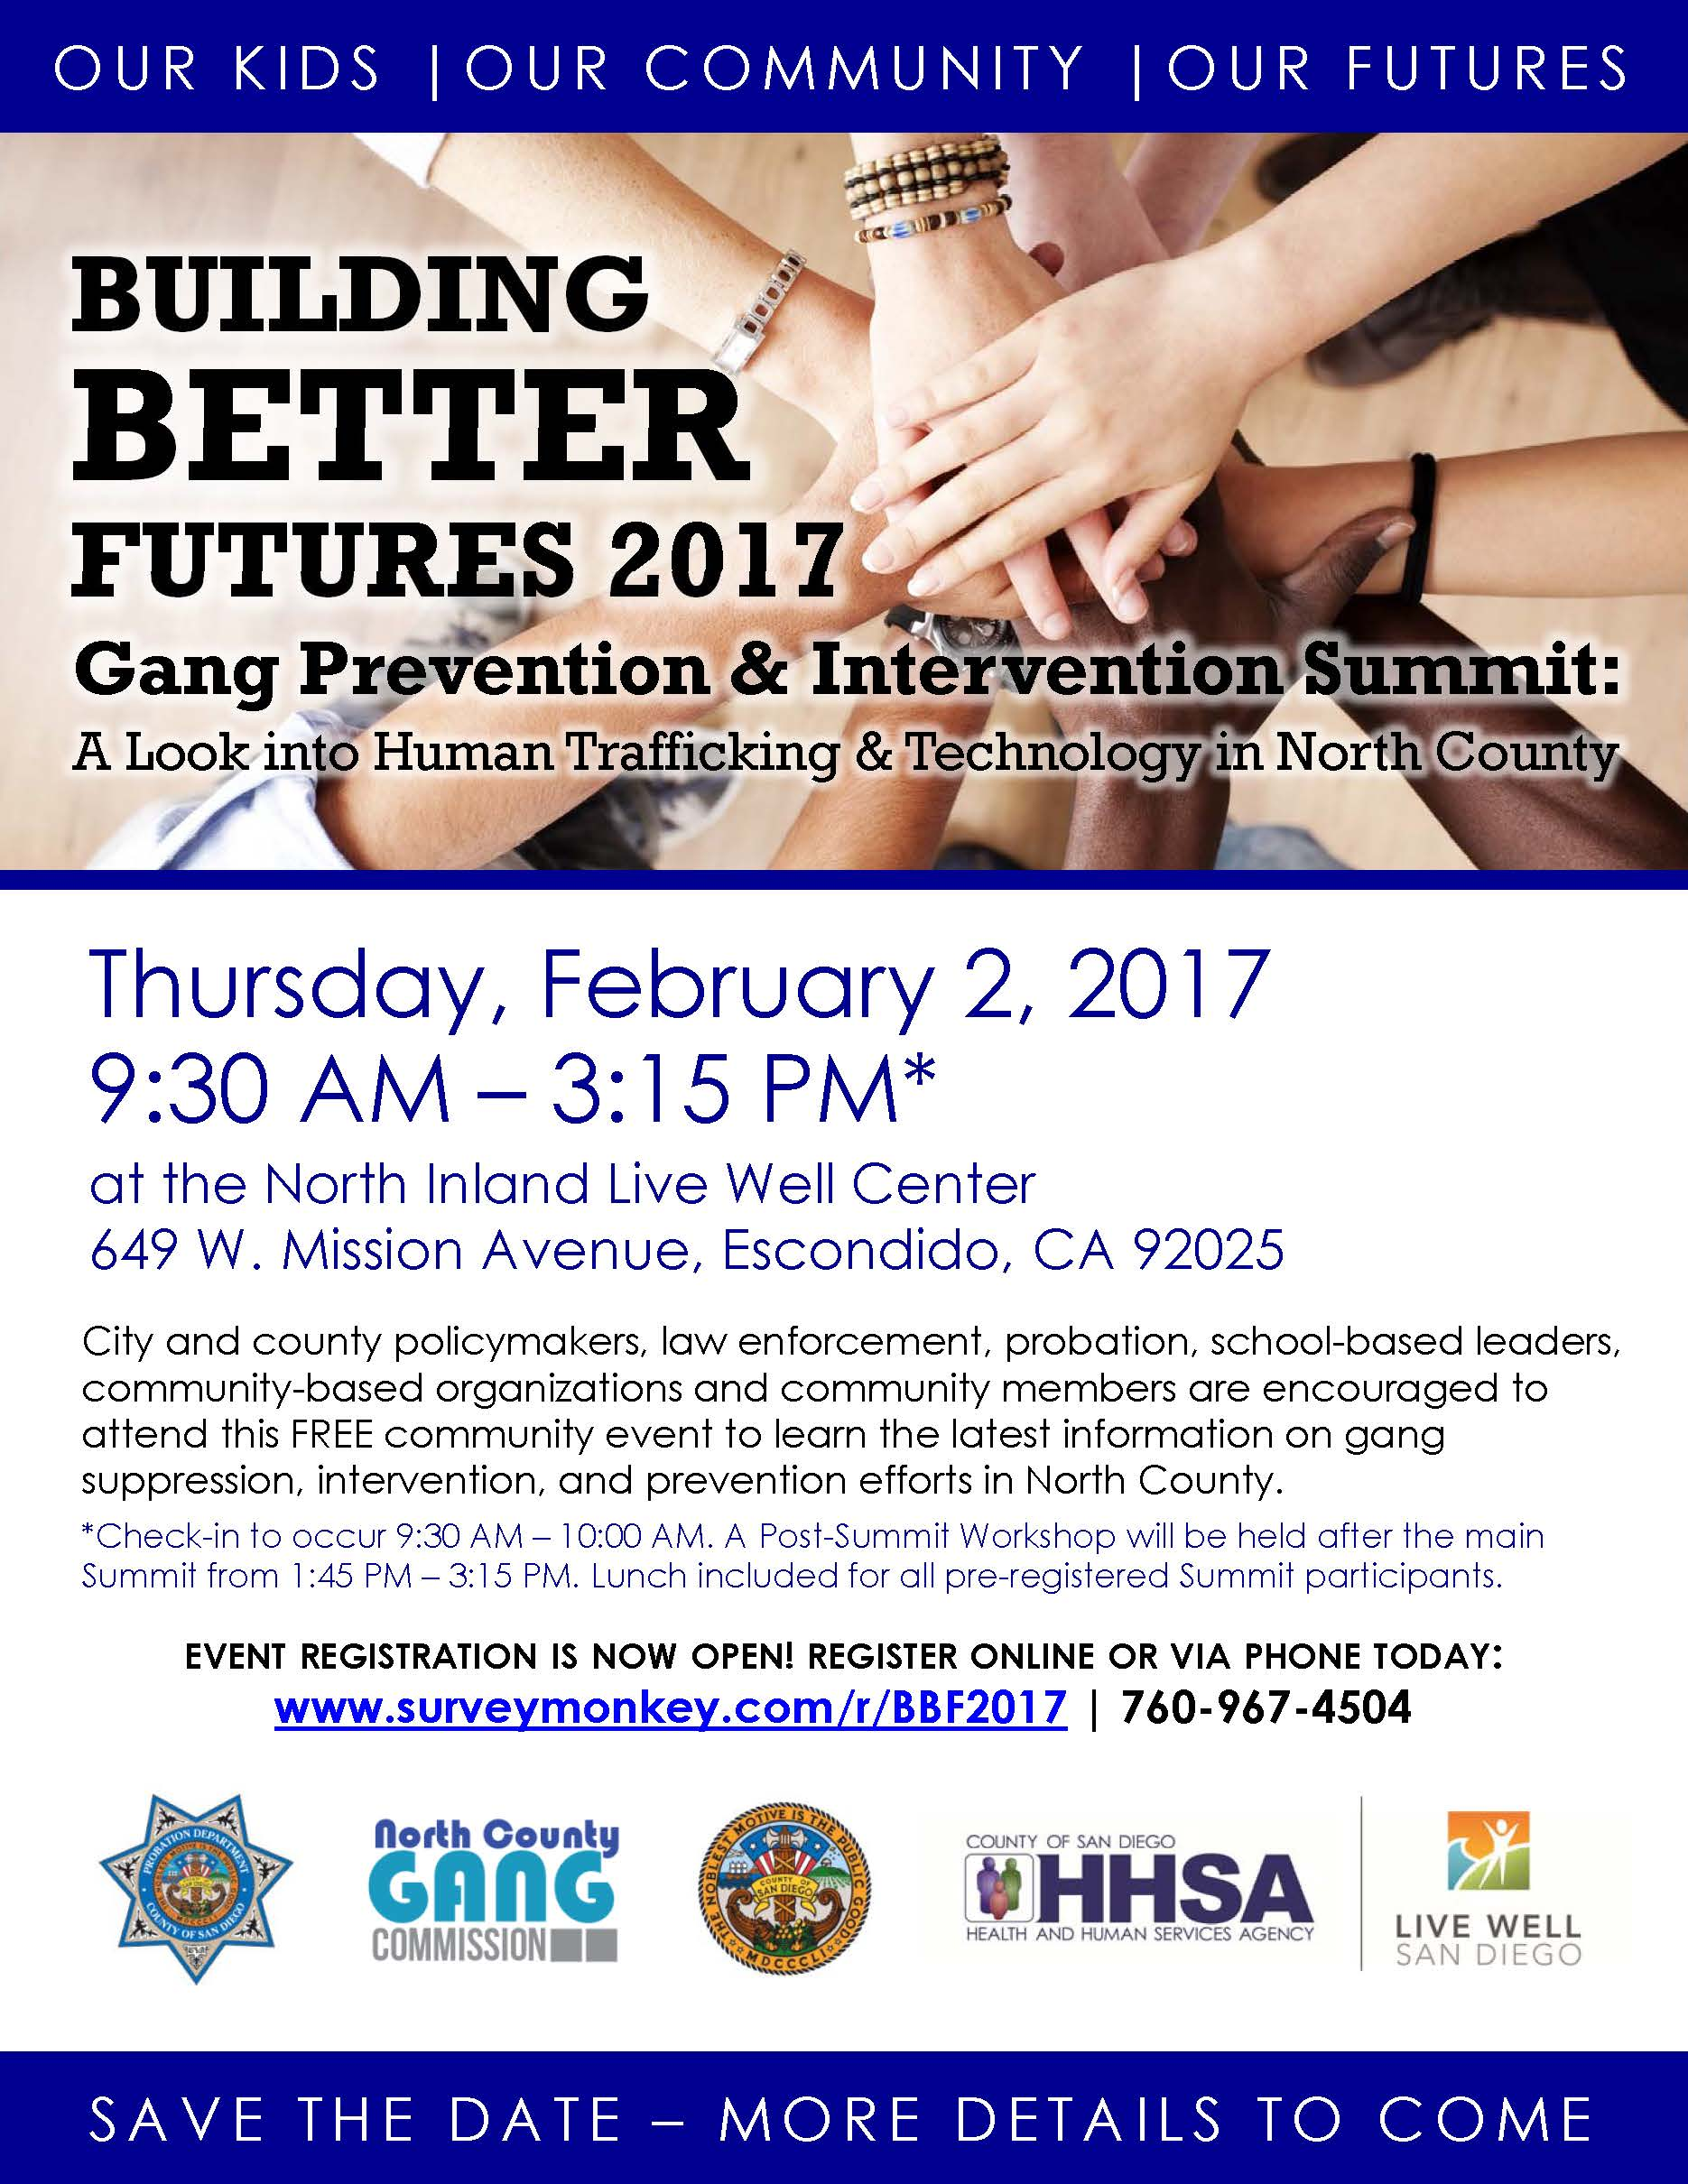 Building Better Futures Gang Prevention & Intervention Summit